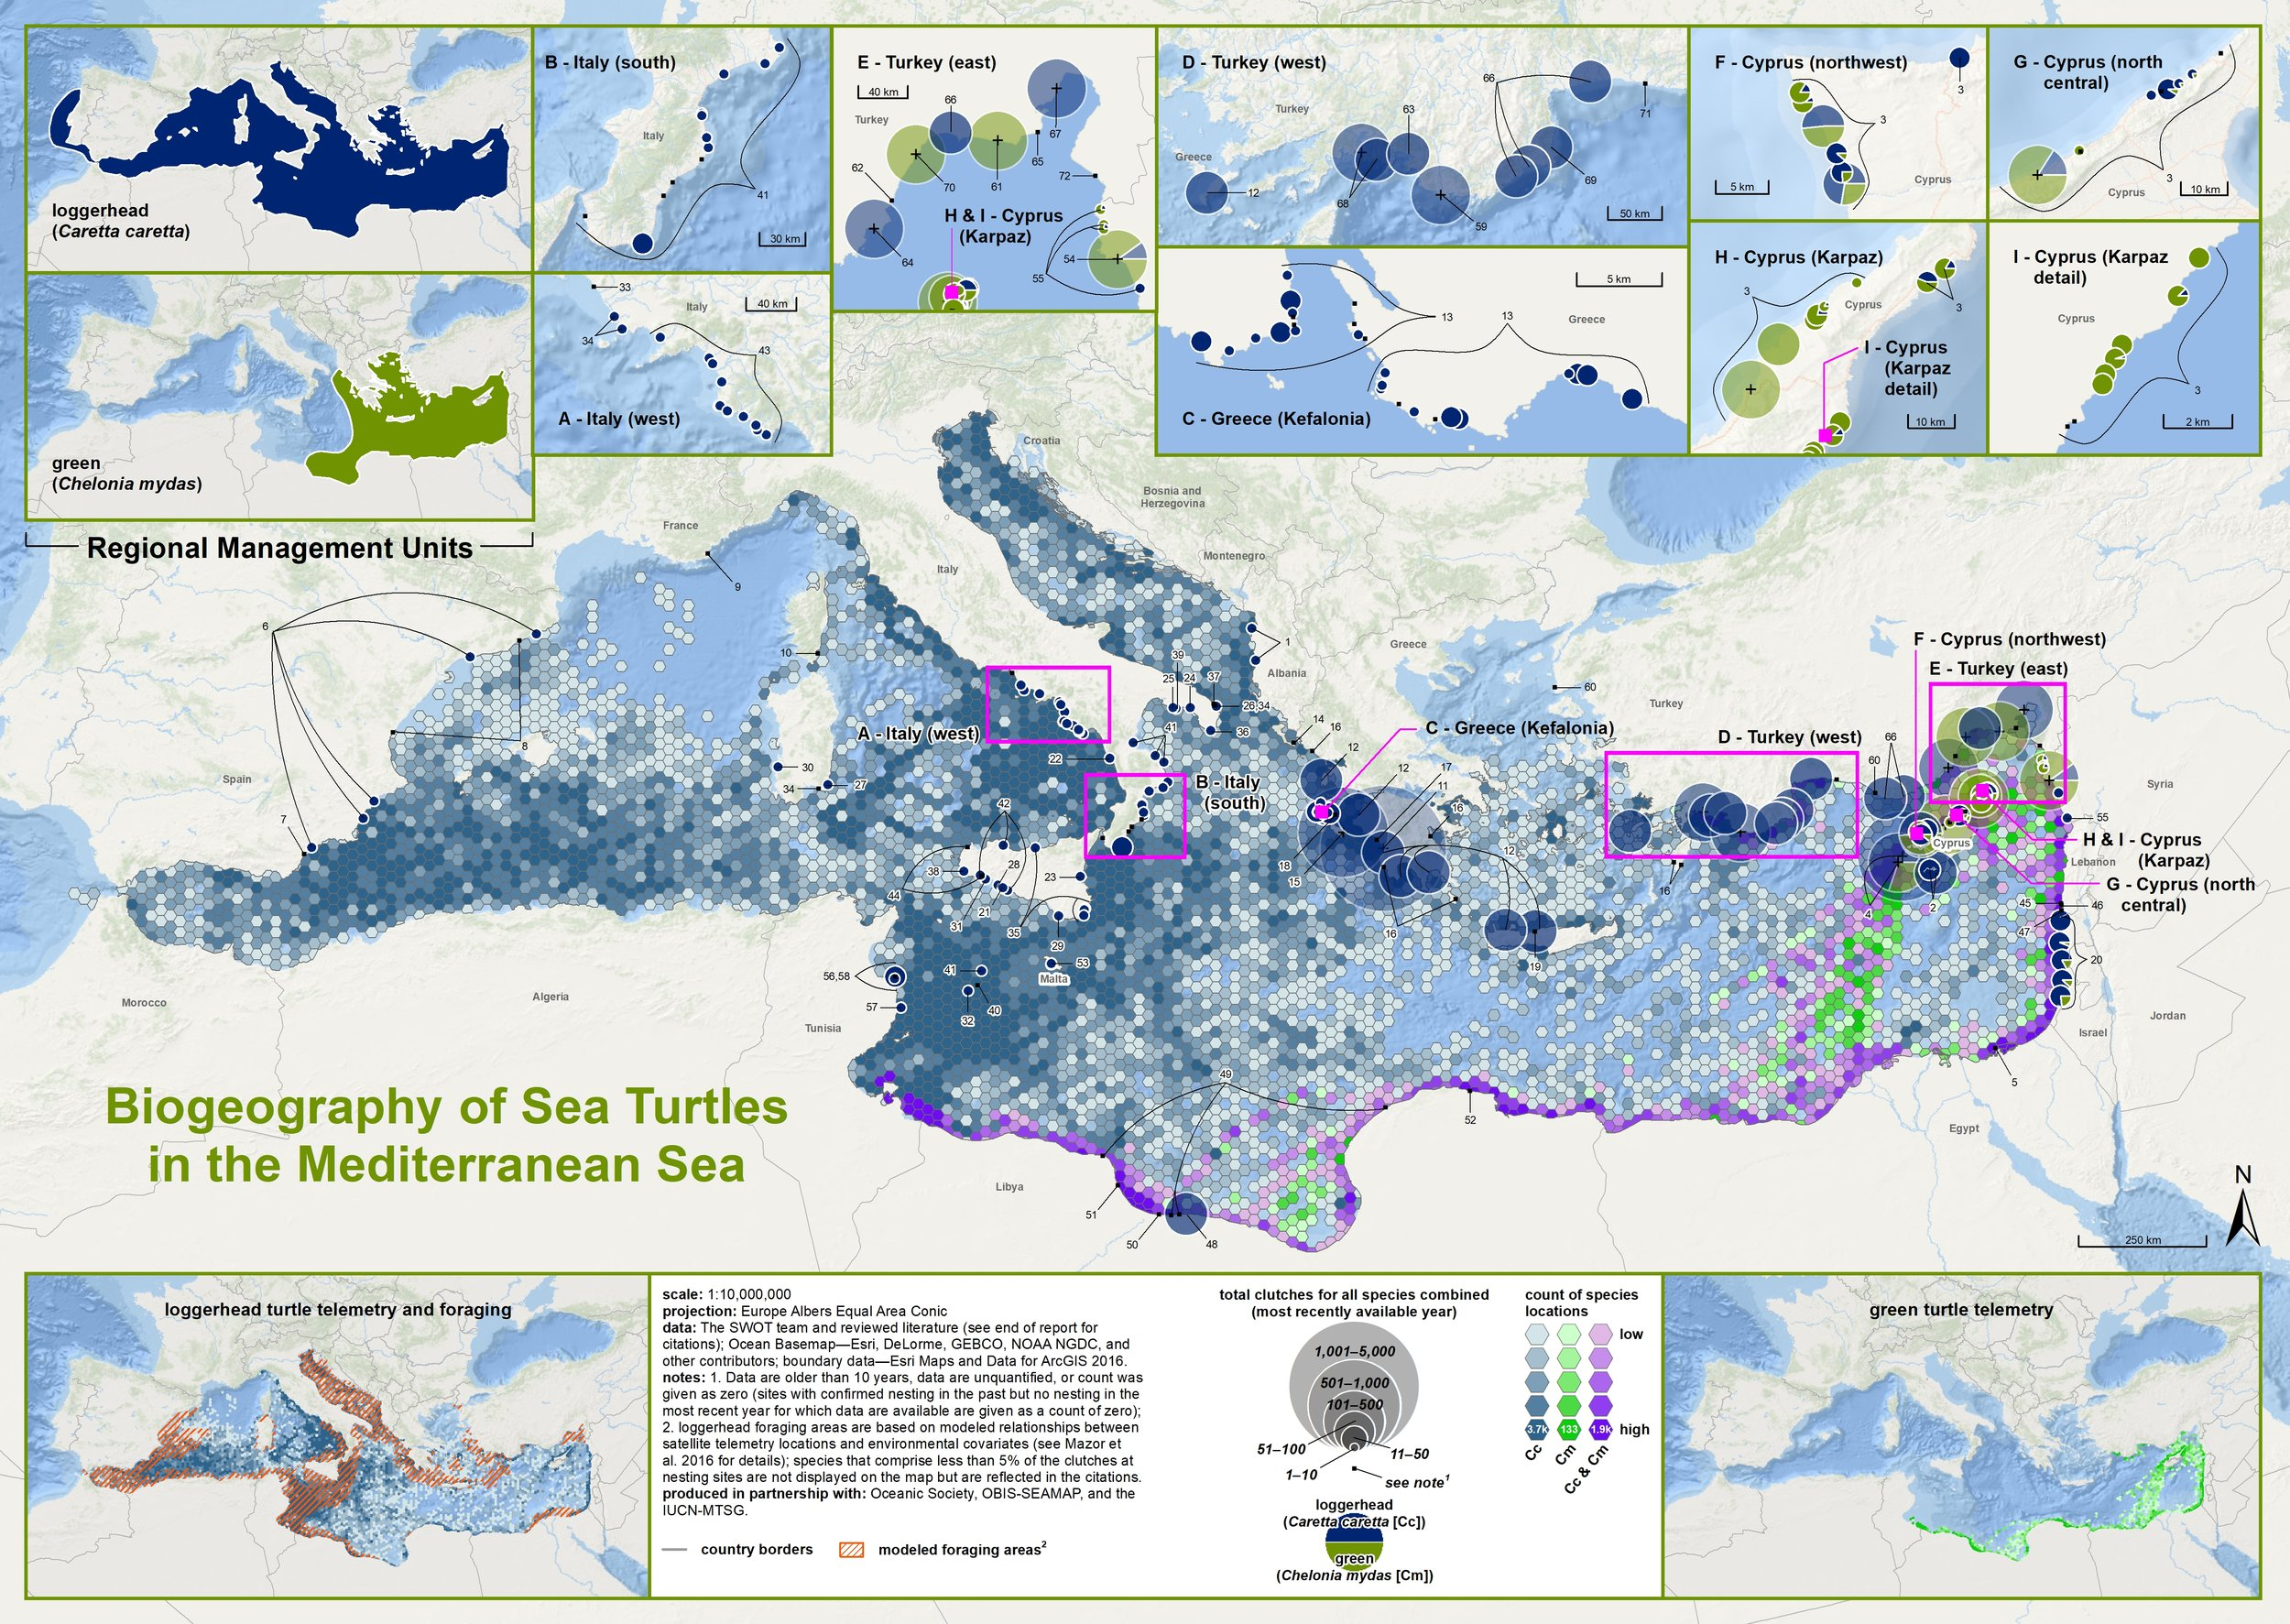 Biogeography of Sea Turtles in the Mediterranean Sea ( data citations ) |   SWOT Report   , vol. XIV (2019) .